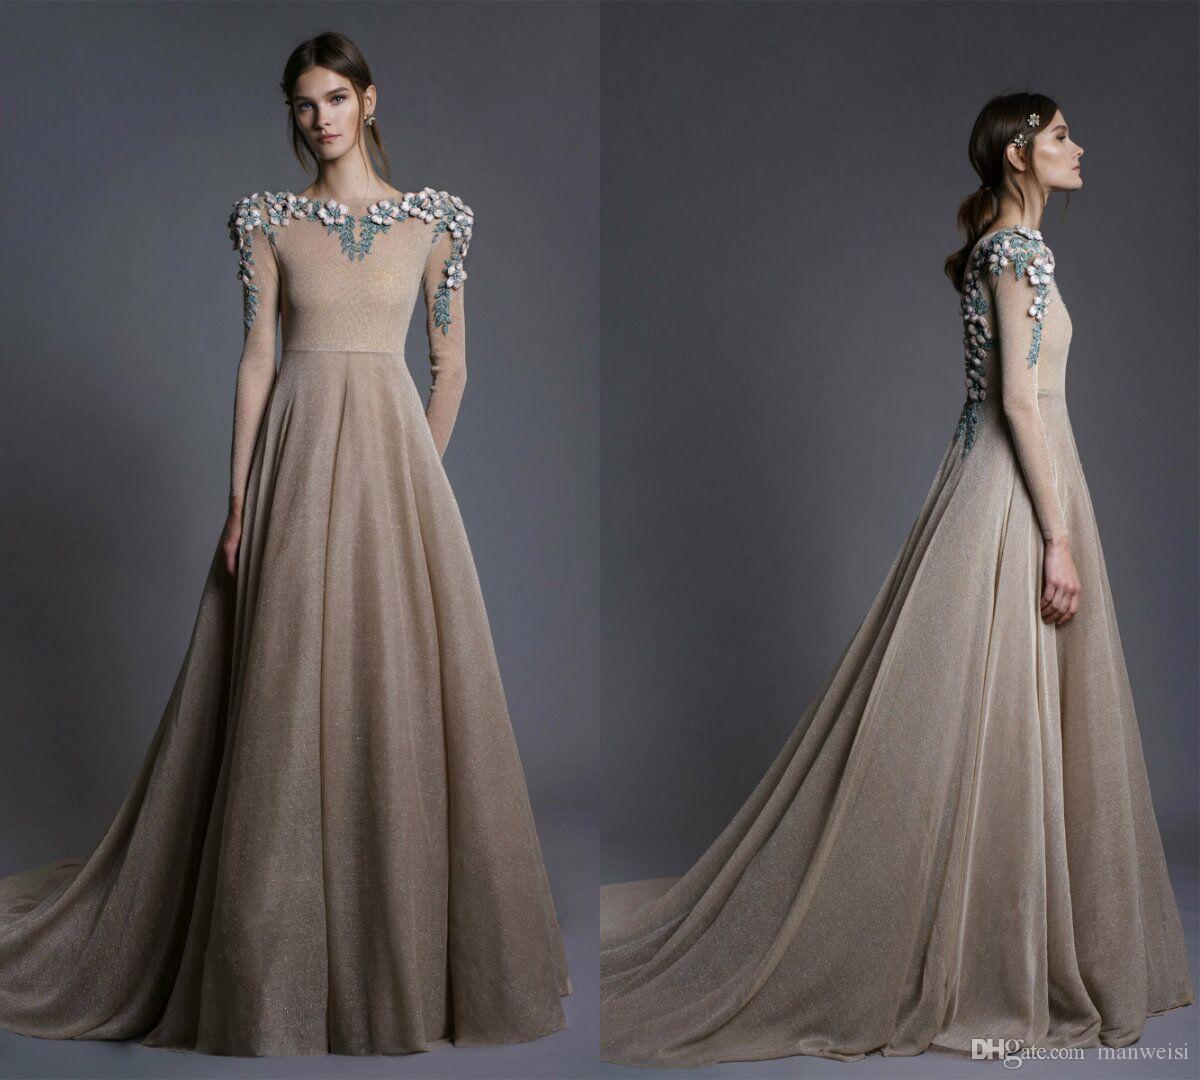 4e9035521f232 Illusion Embroidery Evening Dresses Long Sleeves Lace Appliqued Beads Saudi Arabia  Prom Gowns A Line Nude Formal Party Dress Silk Evening Dress Simple ...